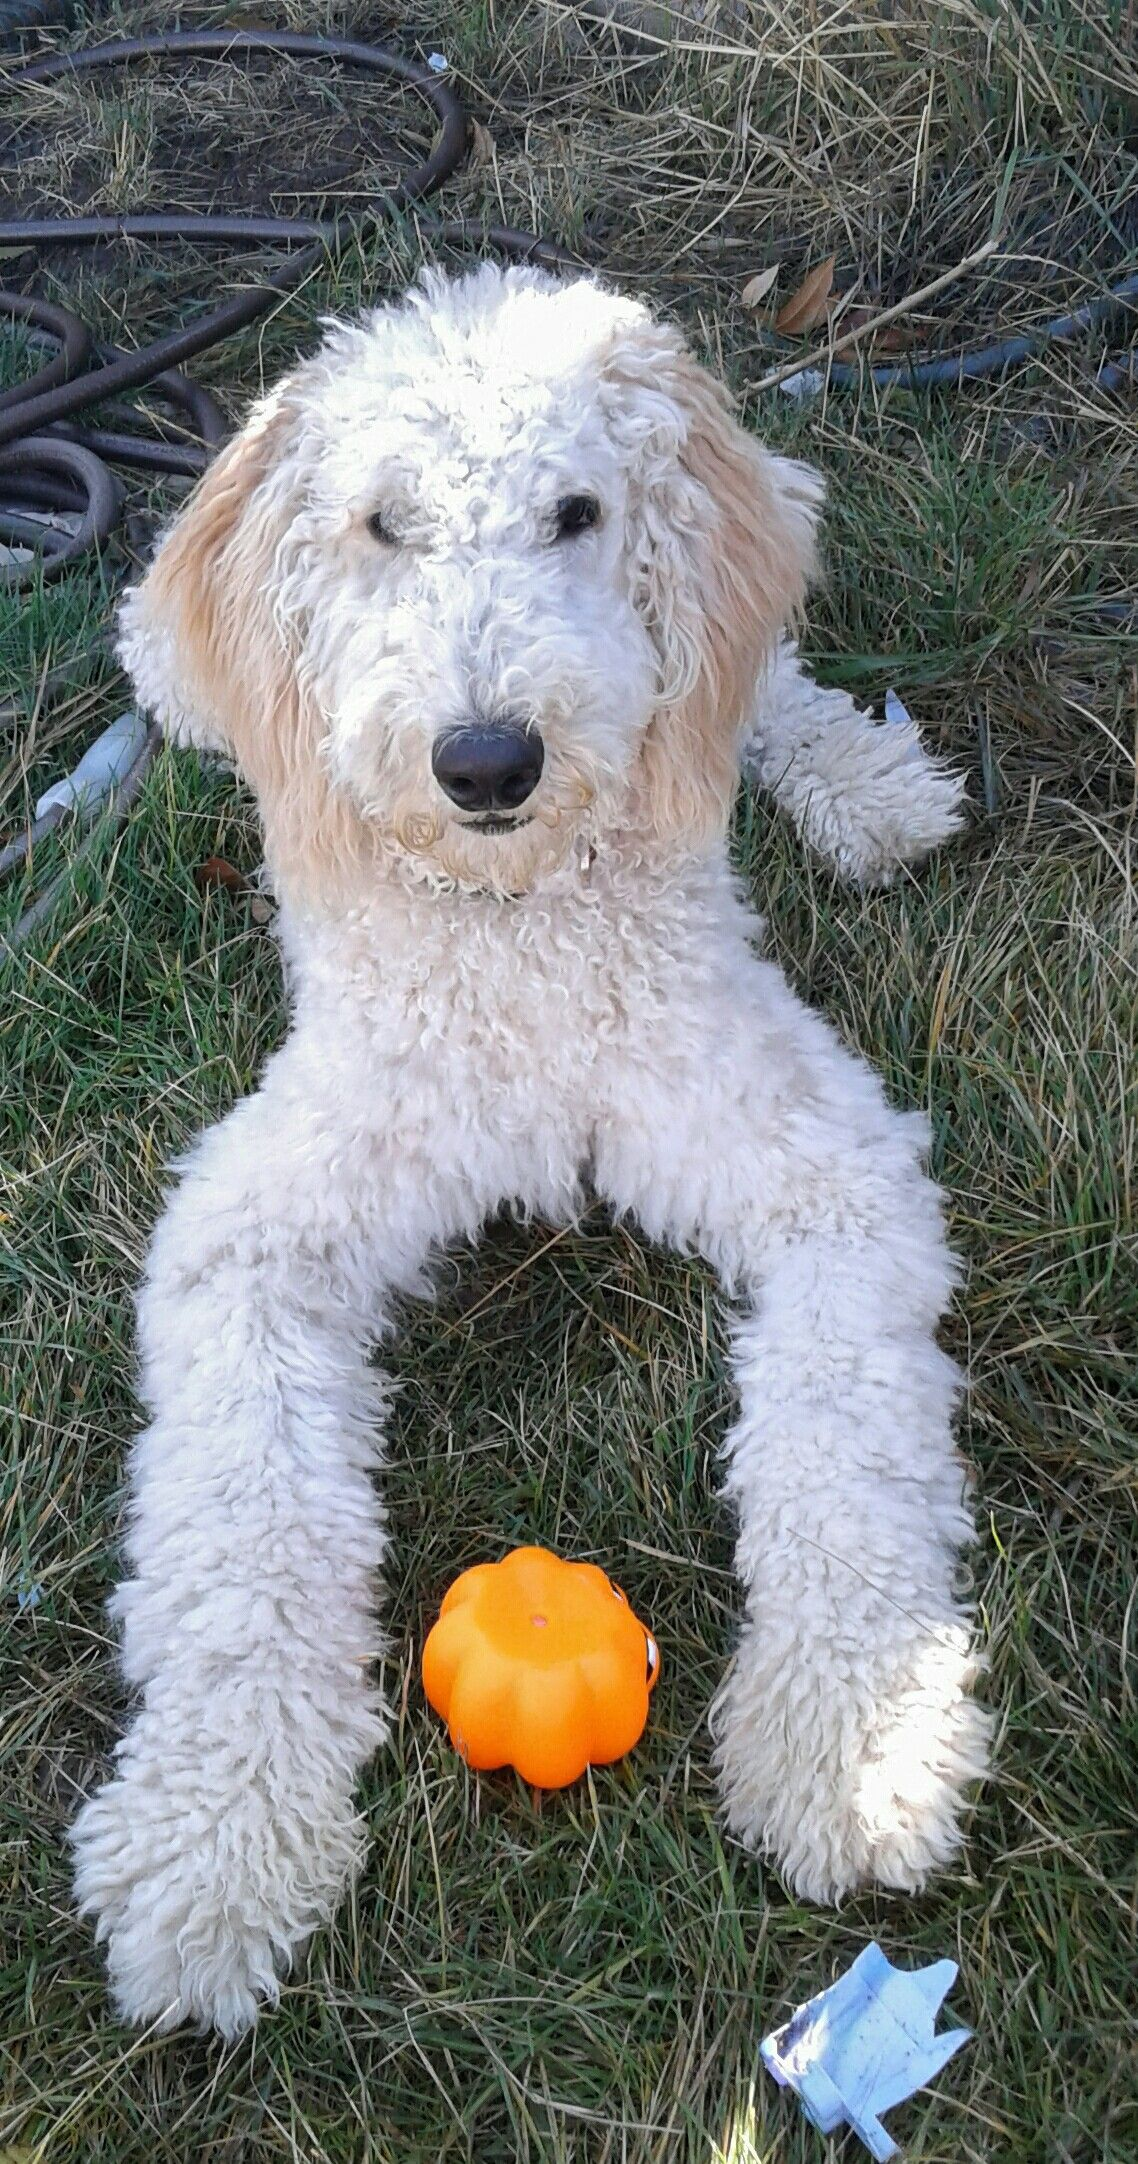 Teddy Stud Services Akc Pure Bred Poodle He Comes With A Pedigree Teddy Pure Bred Poodle